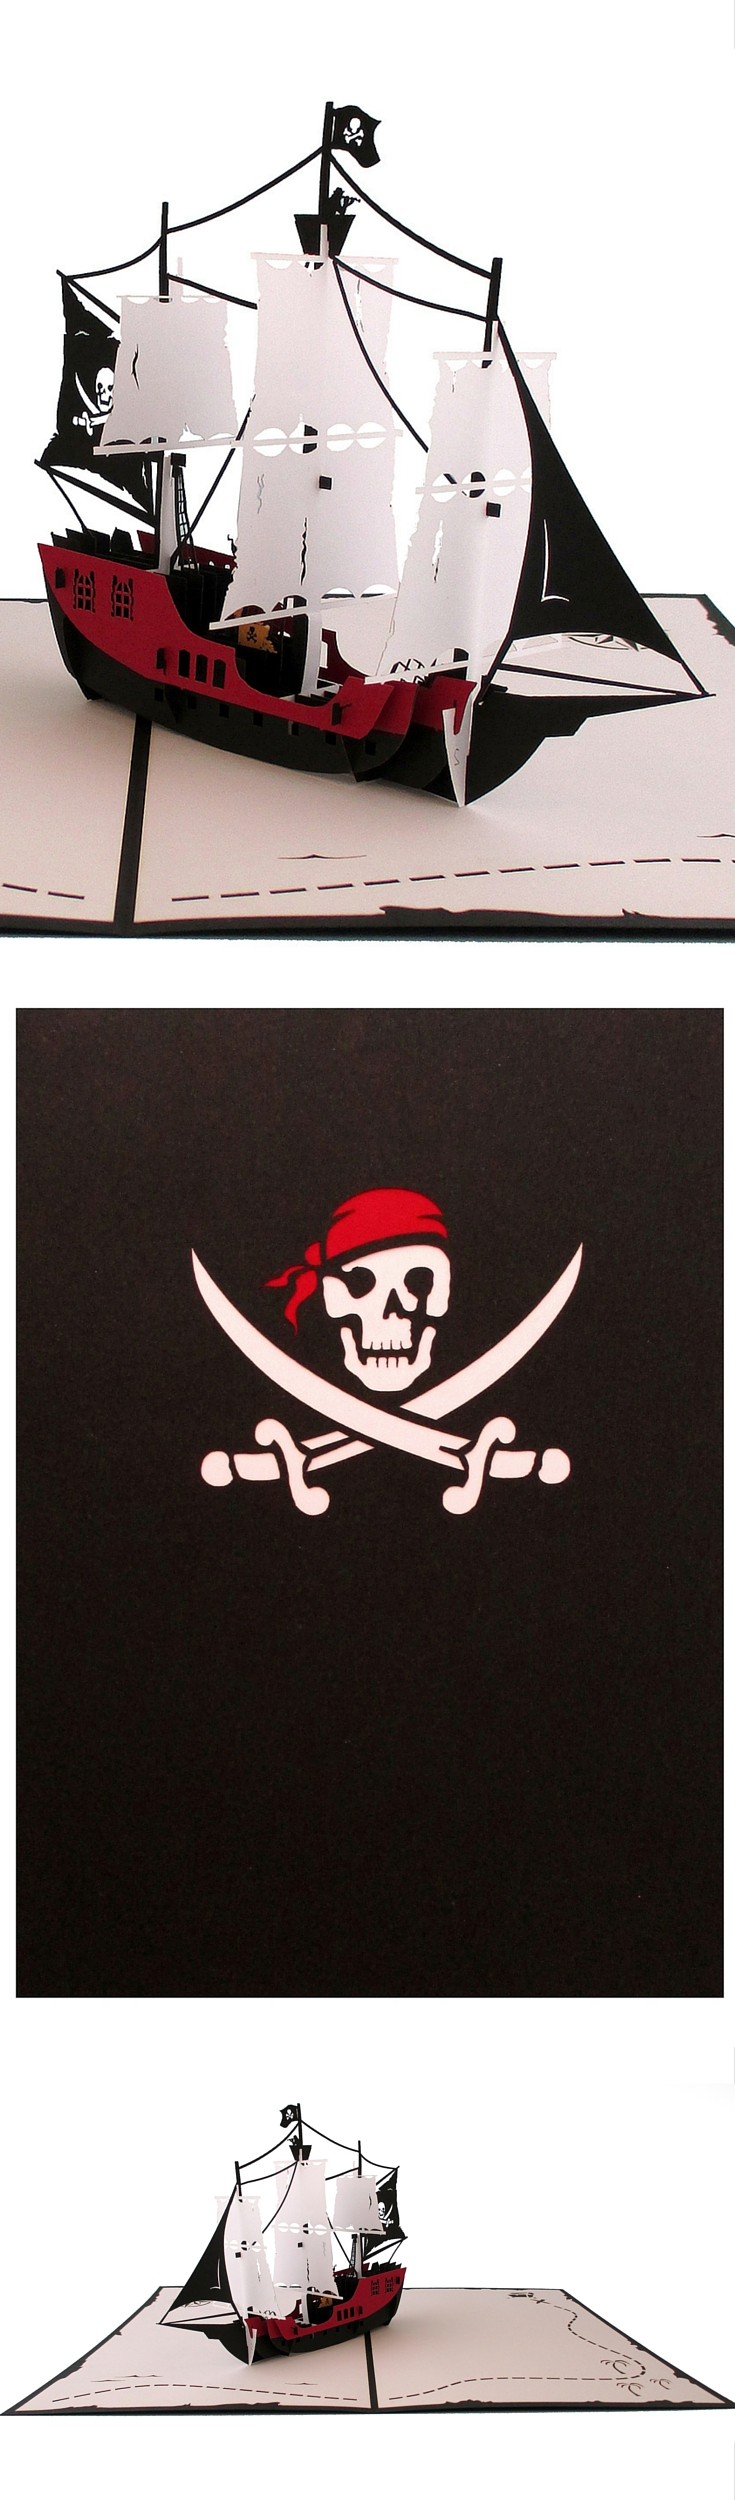 Lovepop's Pirate Ship pop up card is perfect for talk like a pirate day!